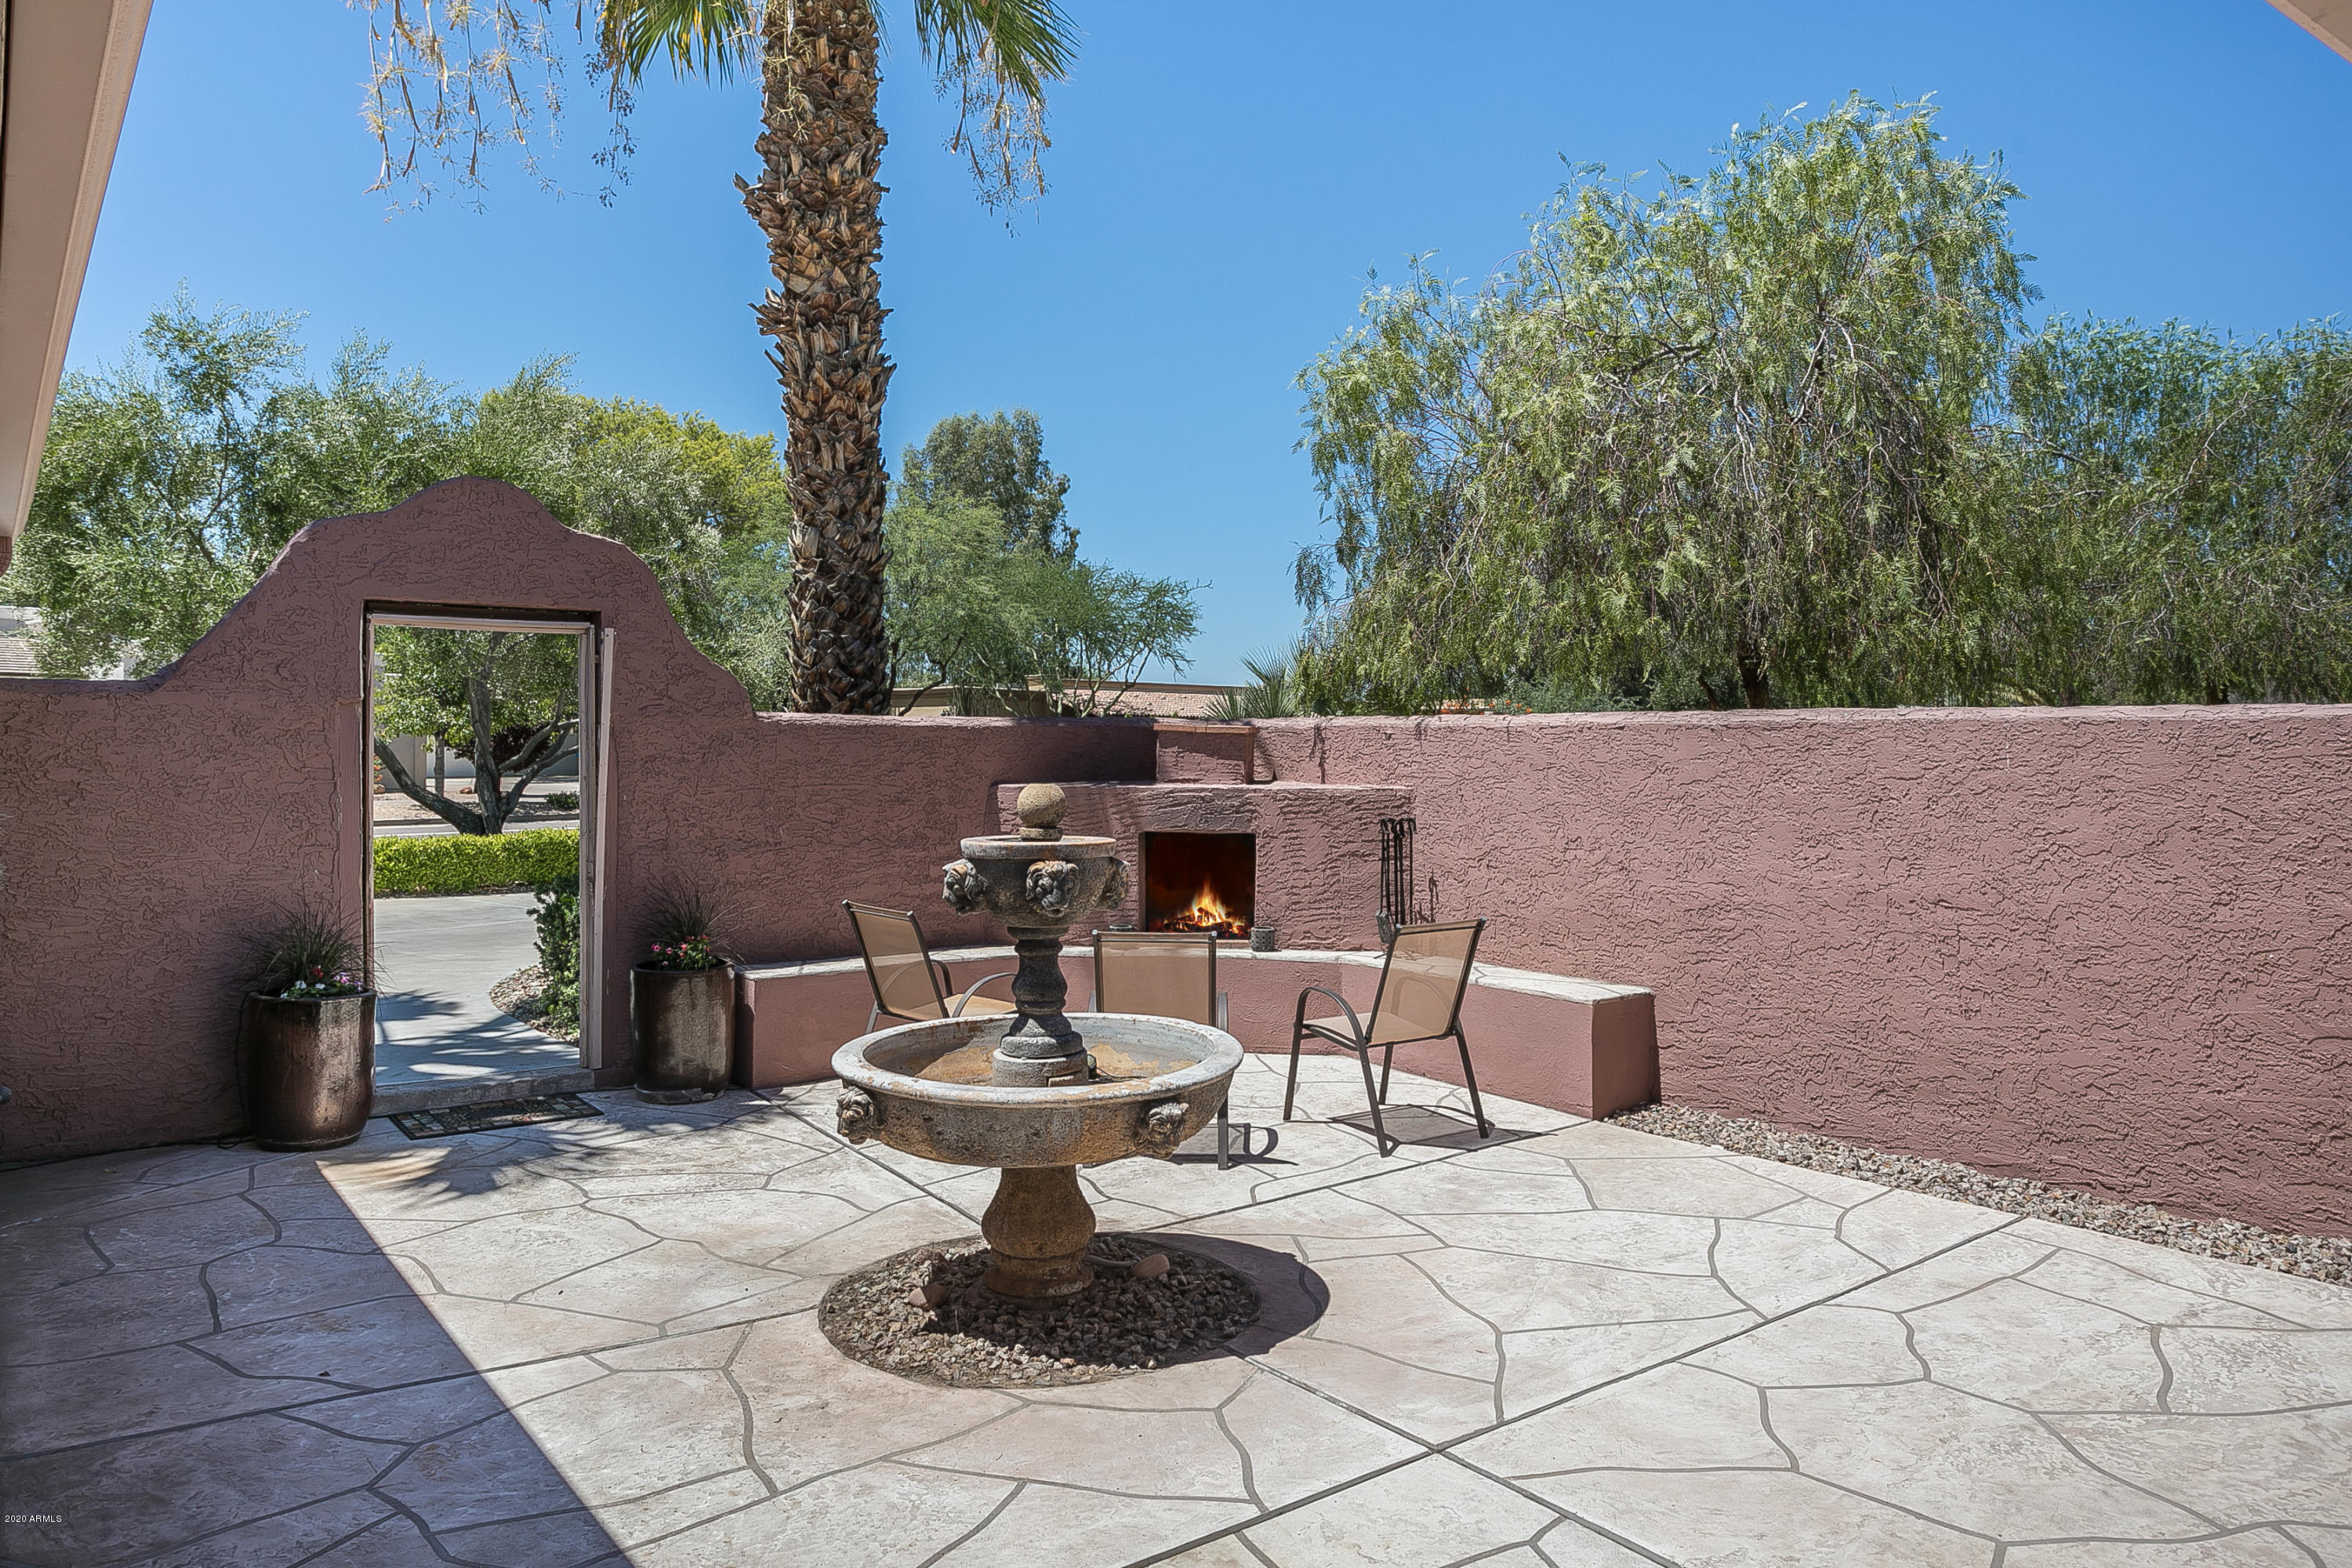 MLS 6044084 13017 N 60TH Street, Scottsdale, AZ 85254 Scottsdale AZ Private Pool